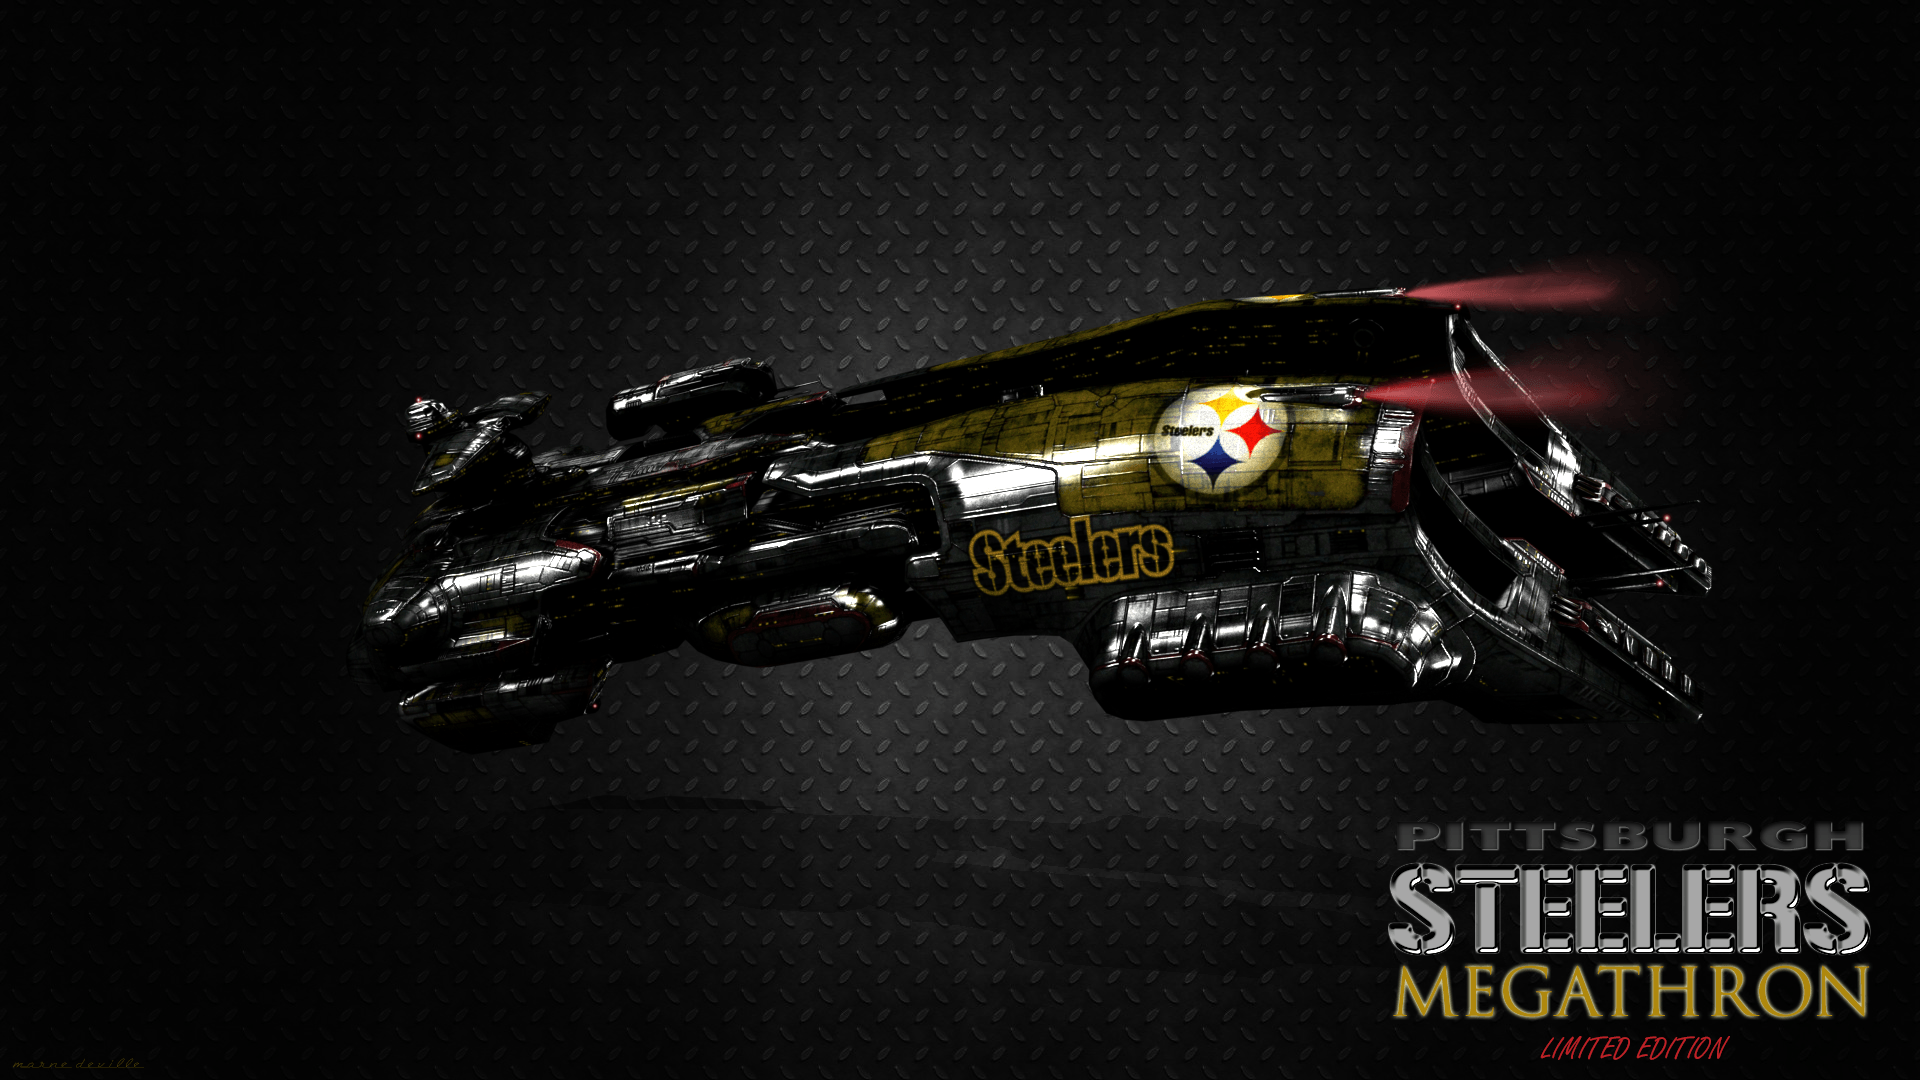 Pittsburgh Steelers Backgrounds - Page 3 of 3 - wallpaper.wiki